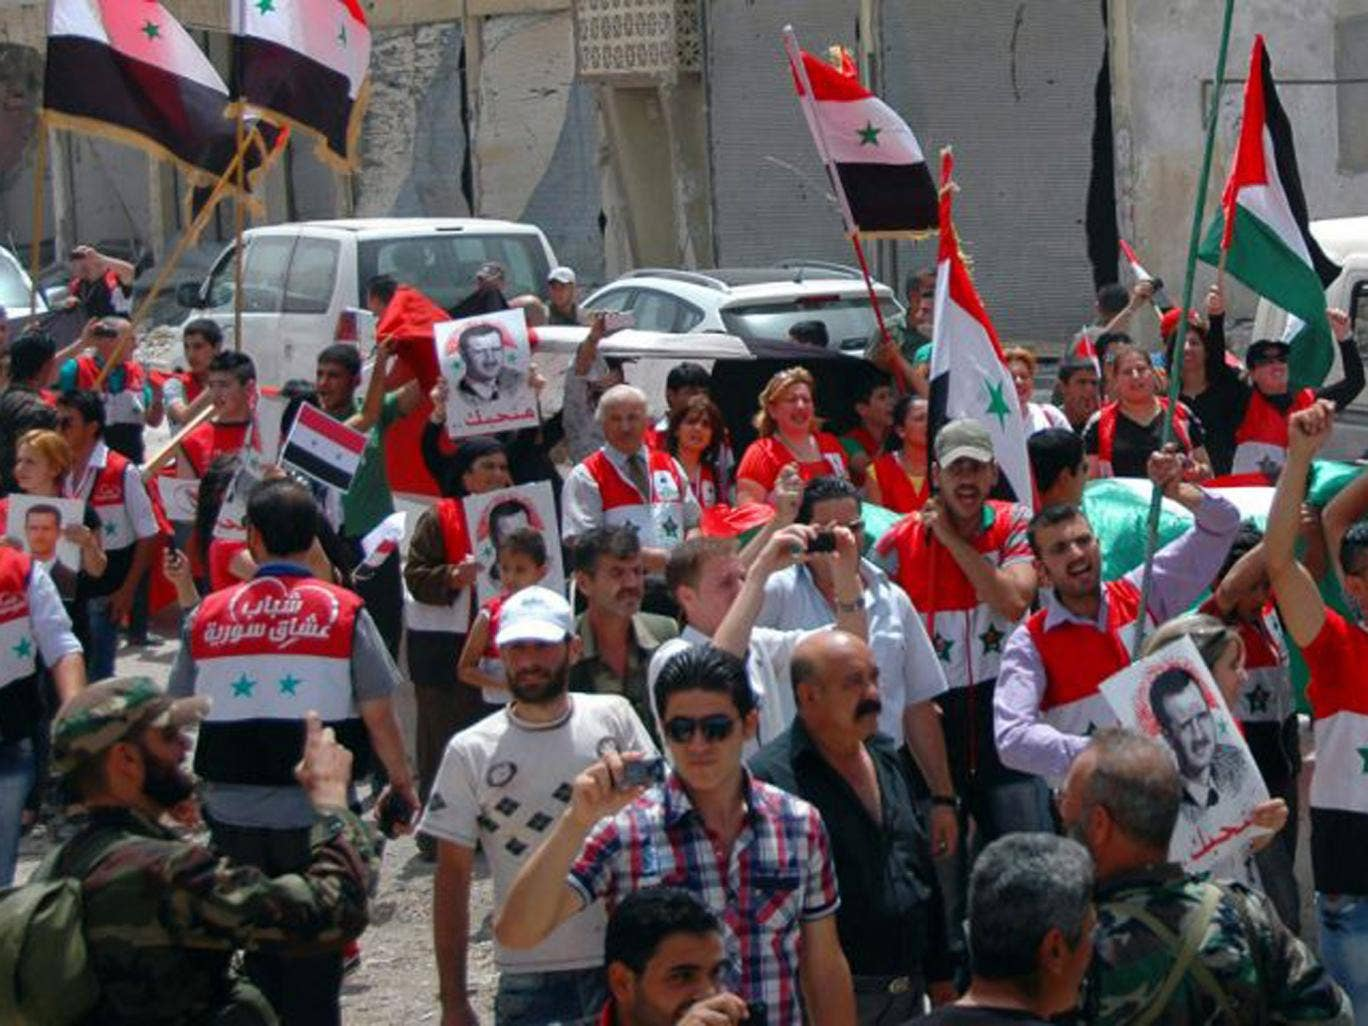 People jubilating in the center of Qusayr as they celebrate the Syrian government's recapture of the town earlier in the week after nearly three weeks of heavy fighting